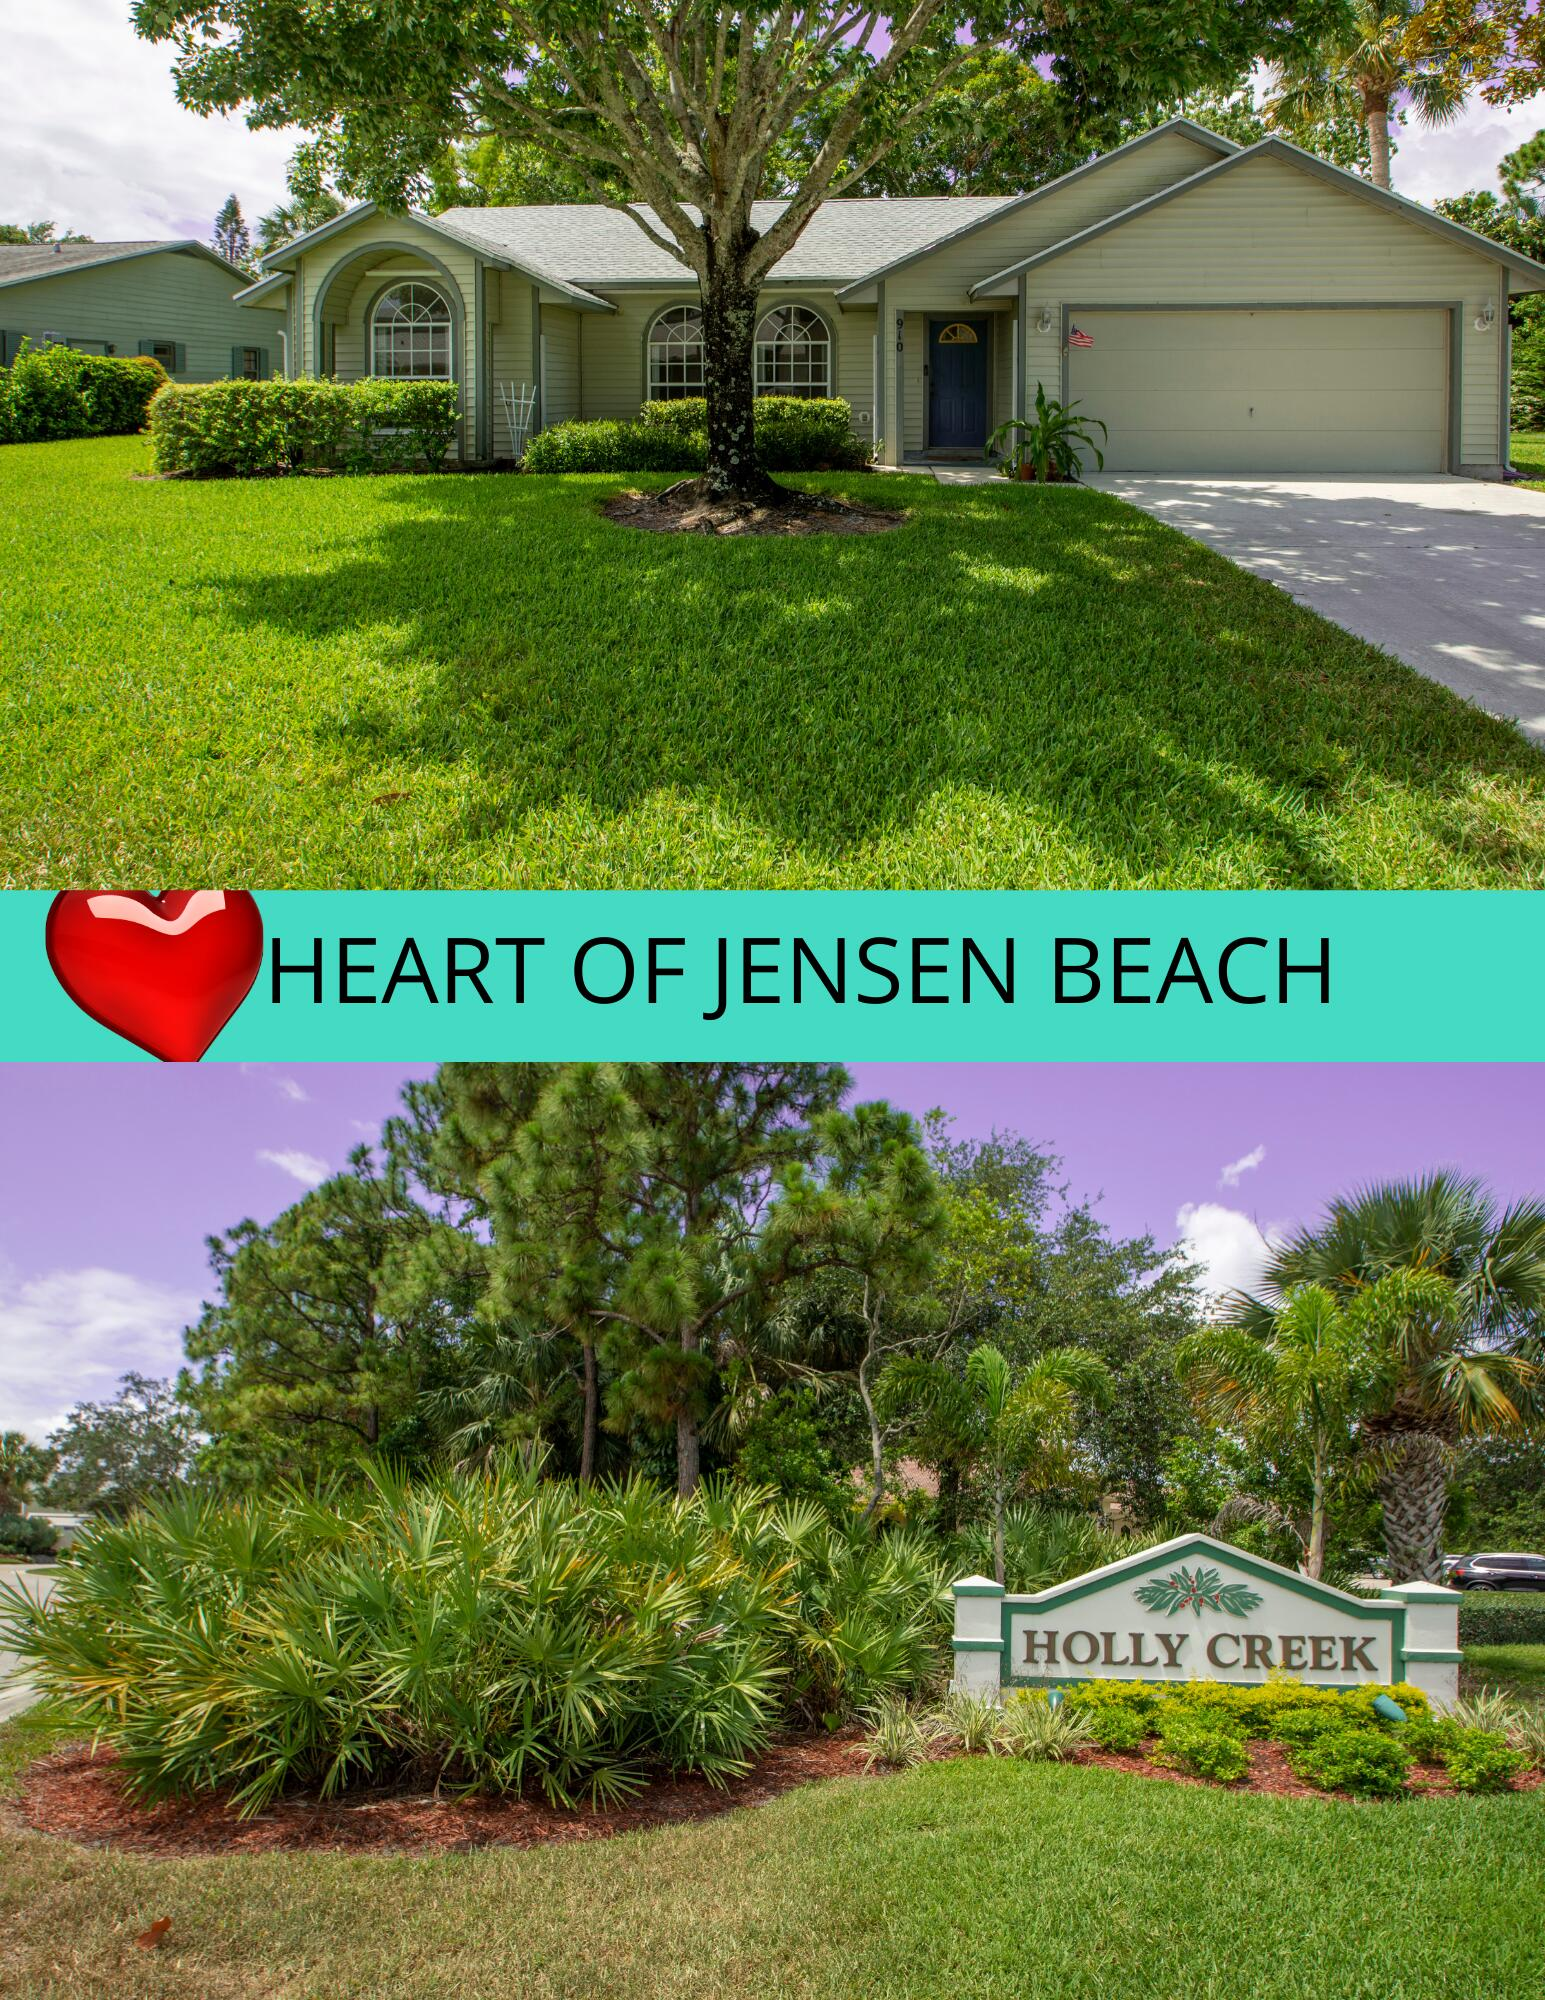 Home for sale in Holly Creek Jensen Beach Florida